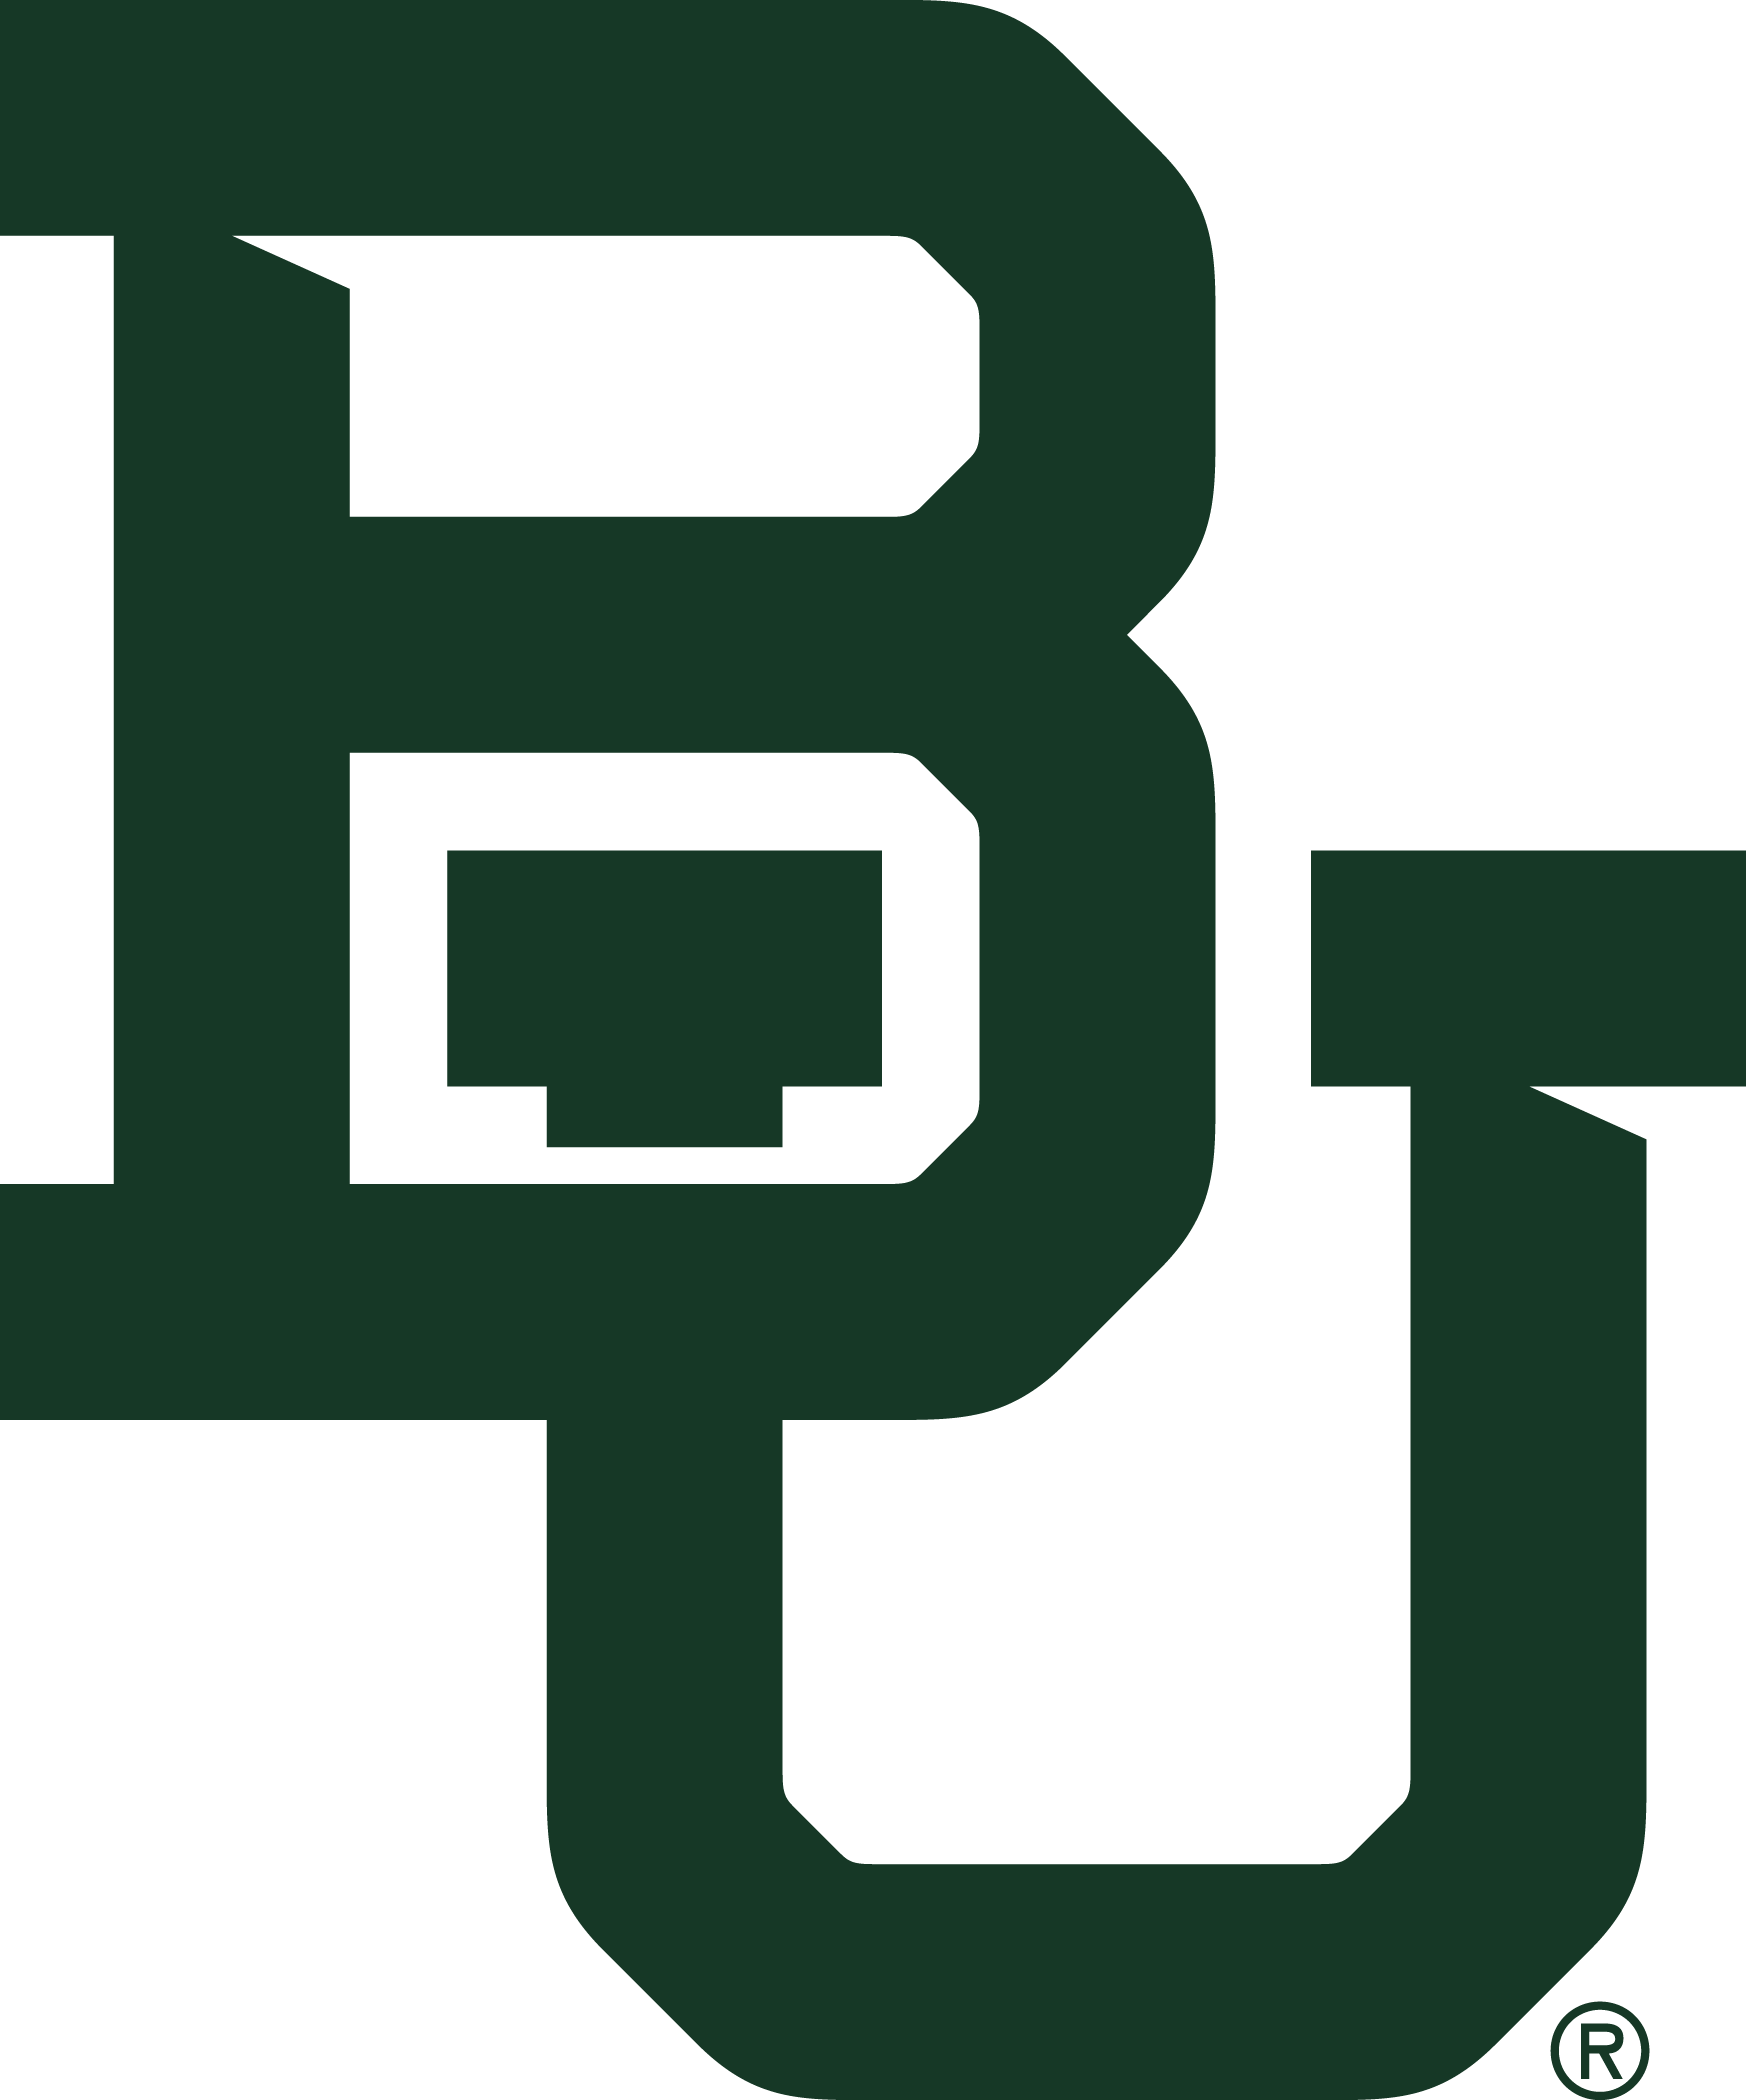 Baylor